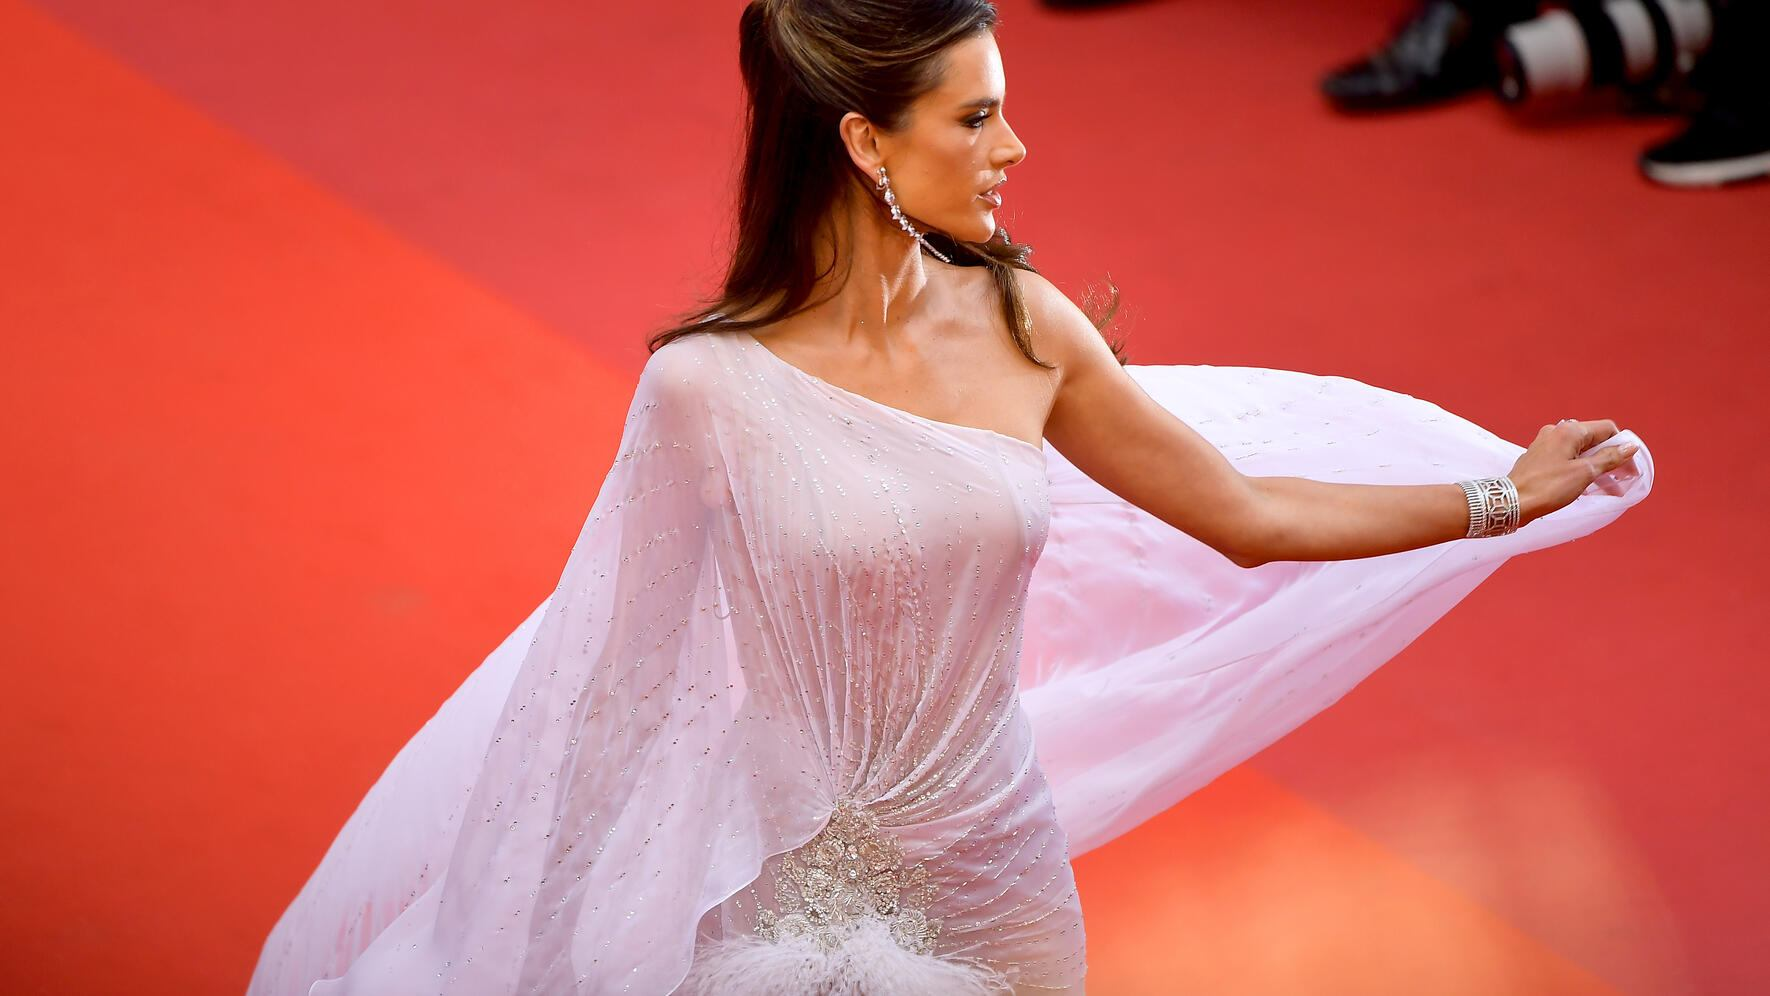 """CANNES, FRANCE - MAY 14: Alessandra Ambrosio attends the opening ceremony and screening of """"The Dead Don't Die"""" during the 72nd annual Cannes Film Festival on May 14, 2019 in Cannes, France. (Photo by Matt Winkelmeyer/Getty Images)"""